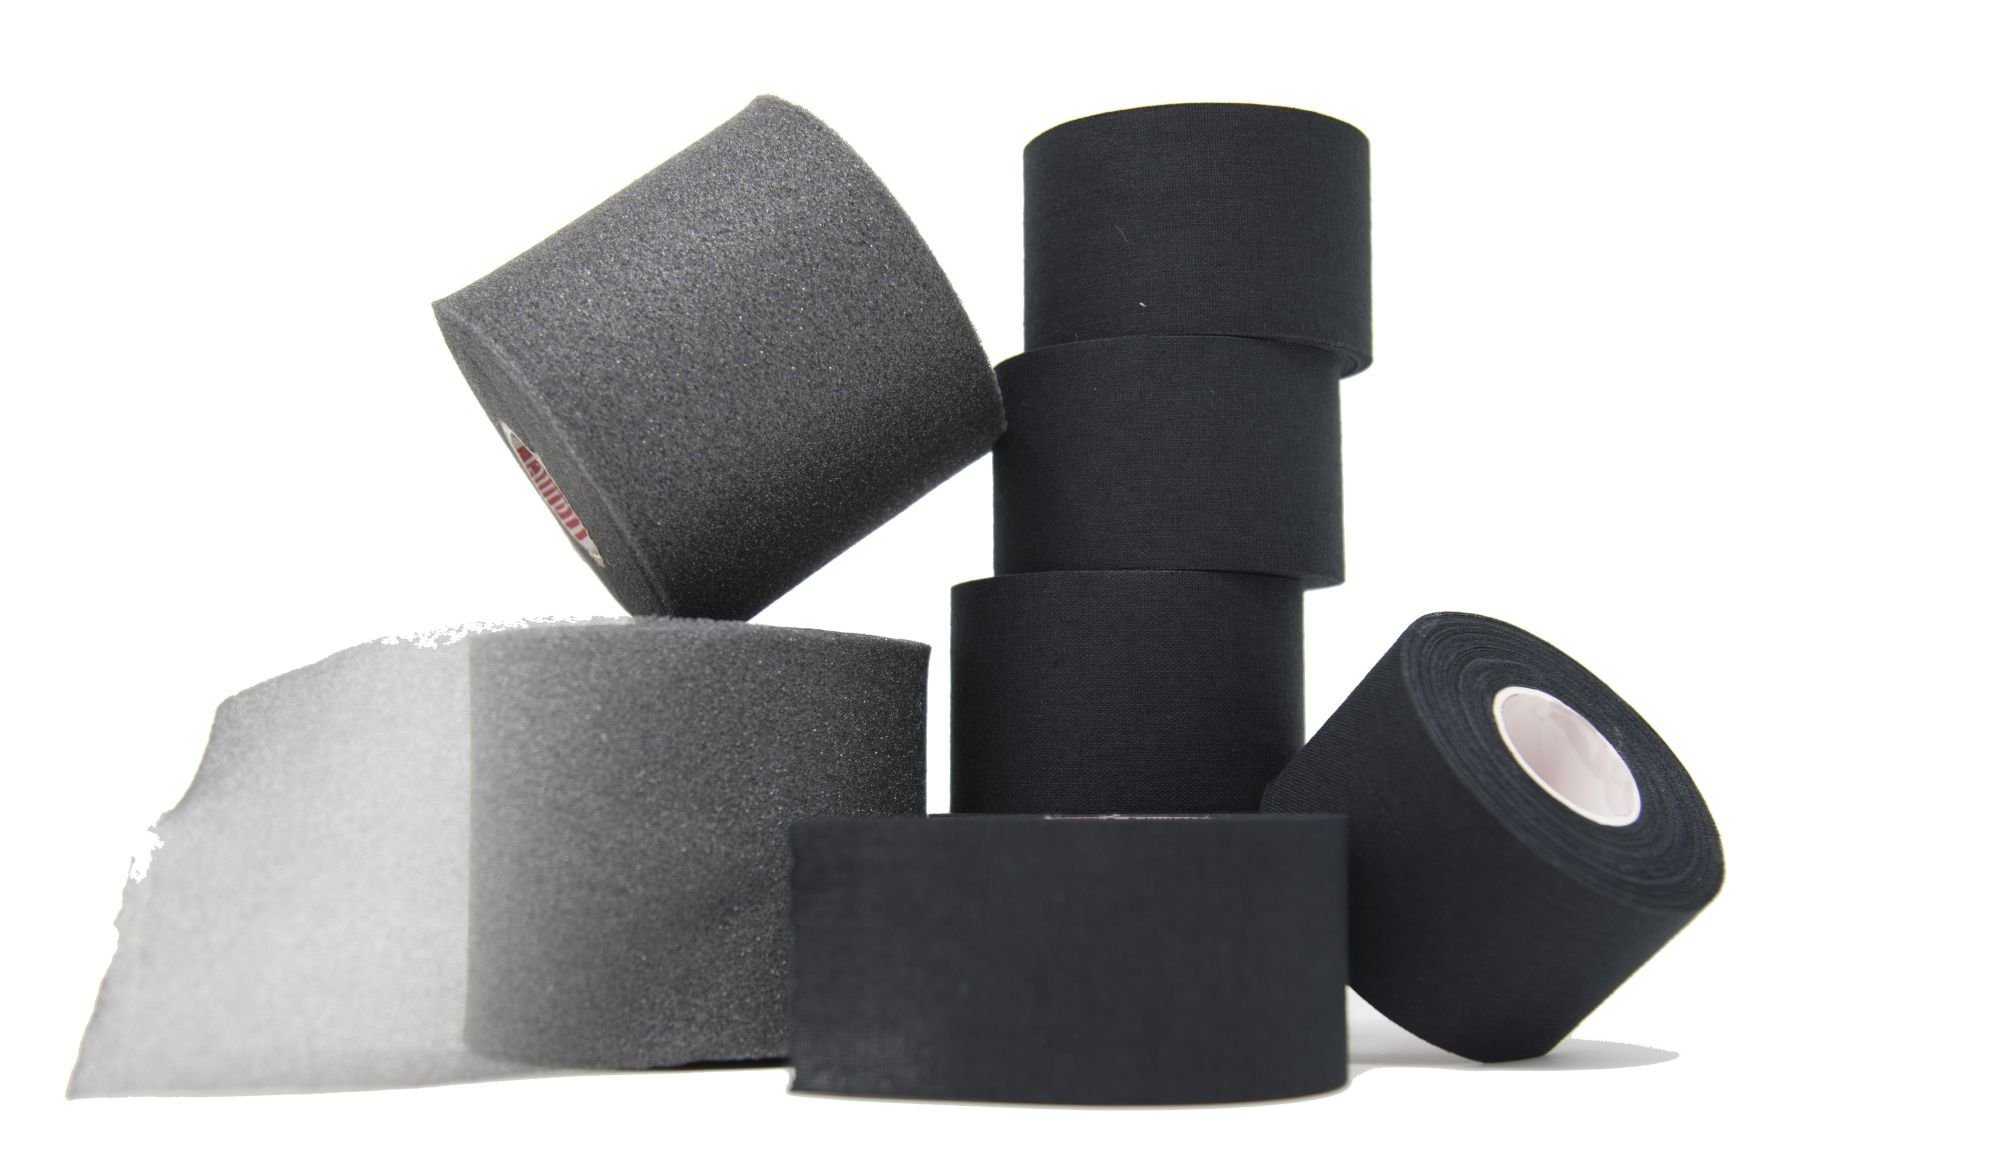 Athletic Tape and Pre Wrap Kit: – 6 Rolls of Black Athletic Tape 1.5'' x 10 yds & 2 Rolls of Pre Wrap - high quality, very strong, no residue, easy tear - save money with this bundle by Active Sports Essentials (ASE)